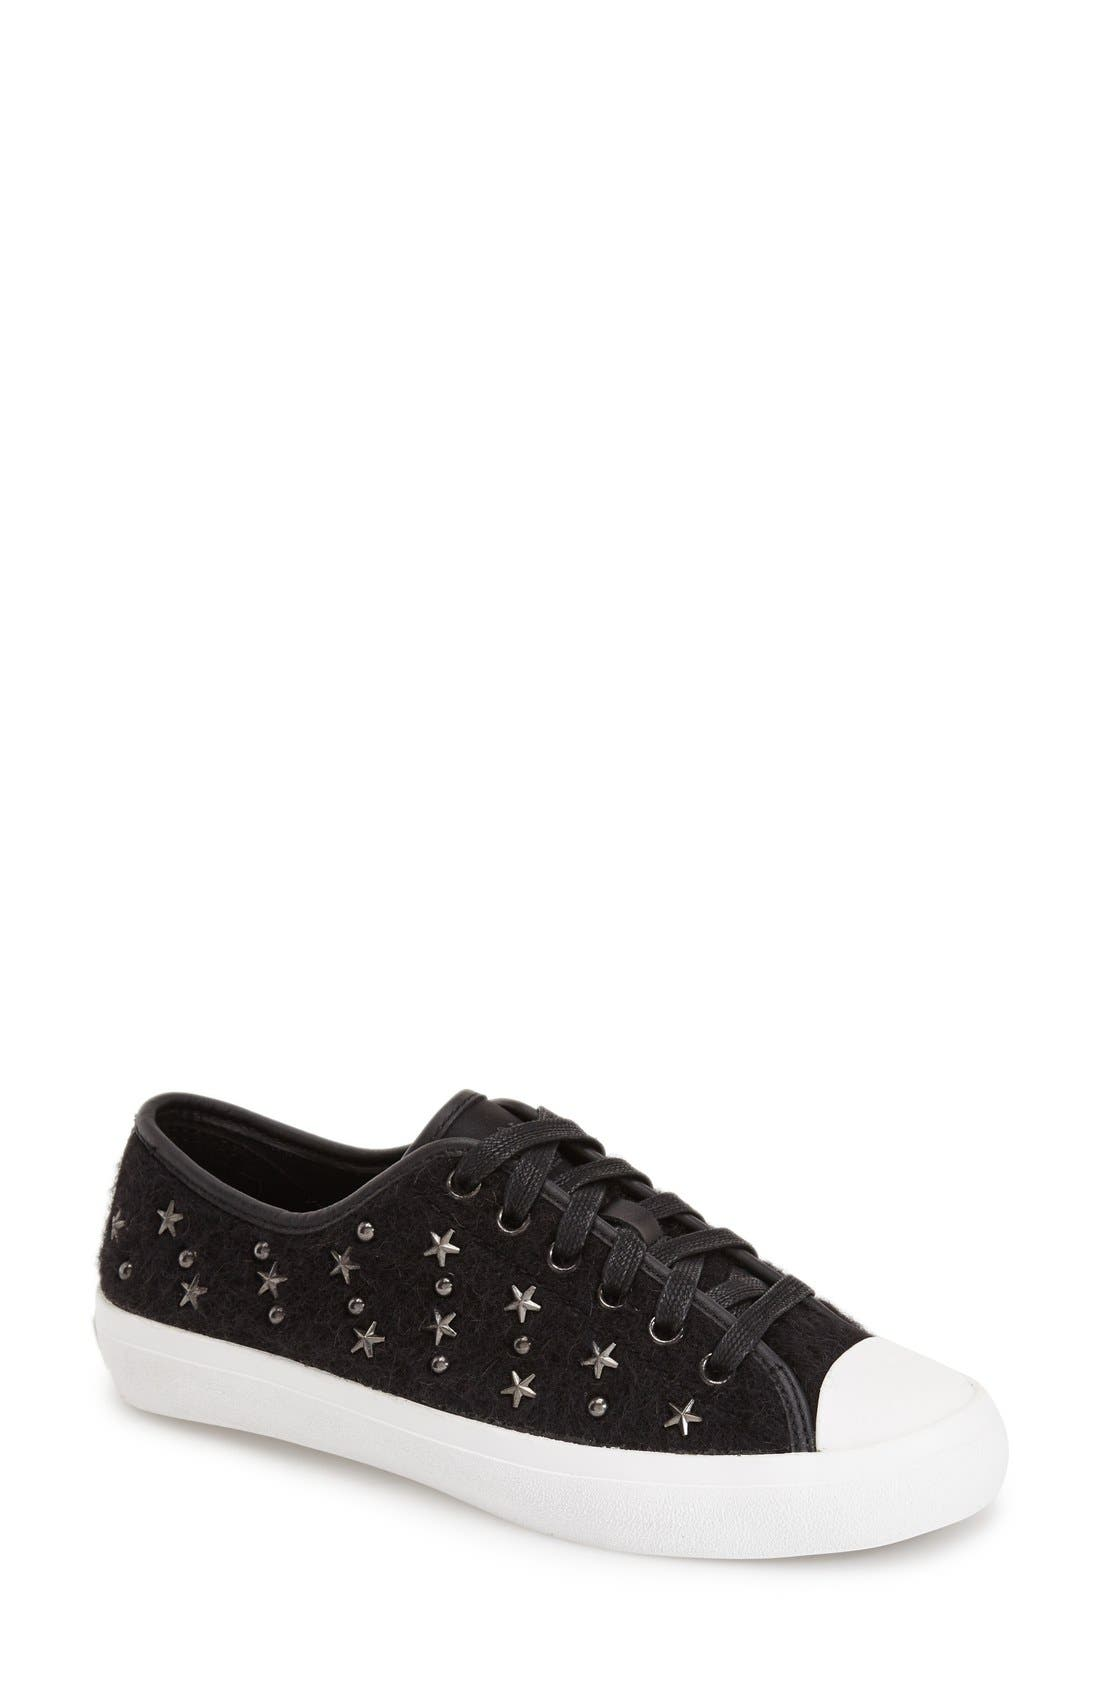 Main Image - COACH 'Empire Star' Studded Sneaker (Women)